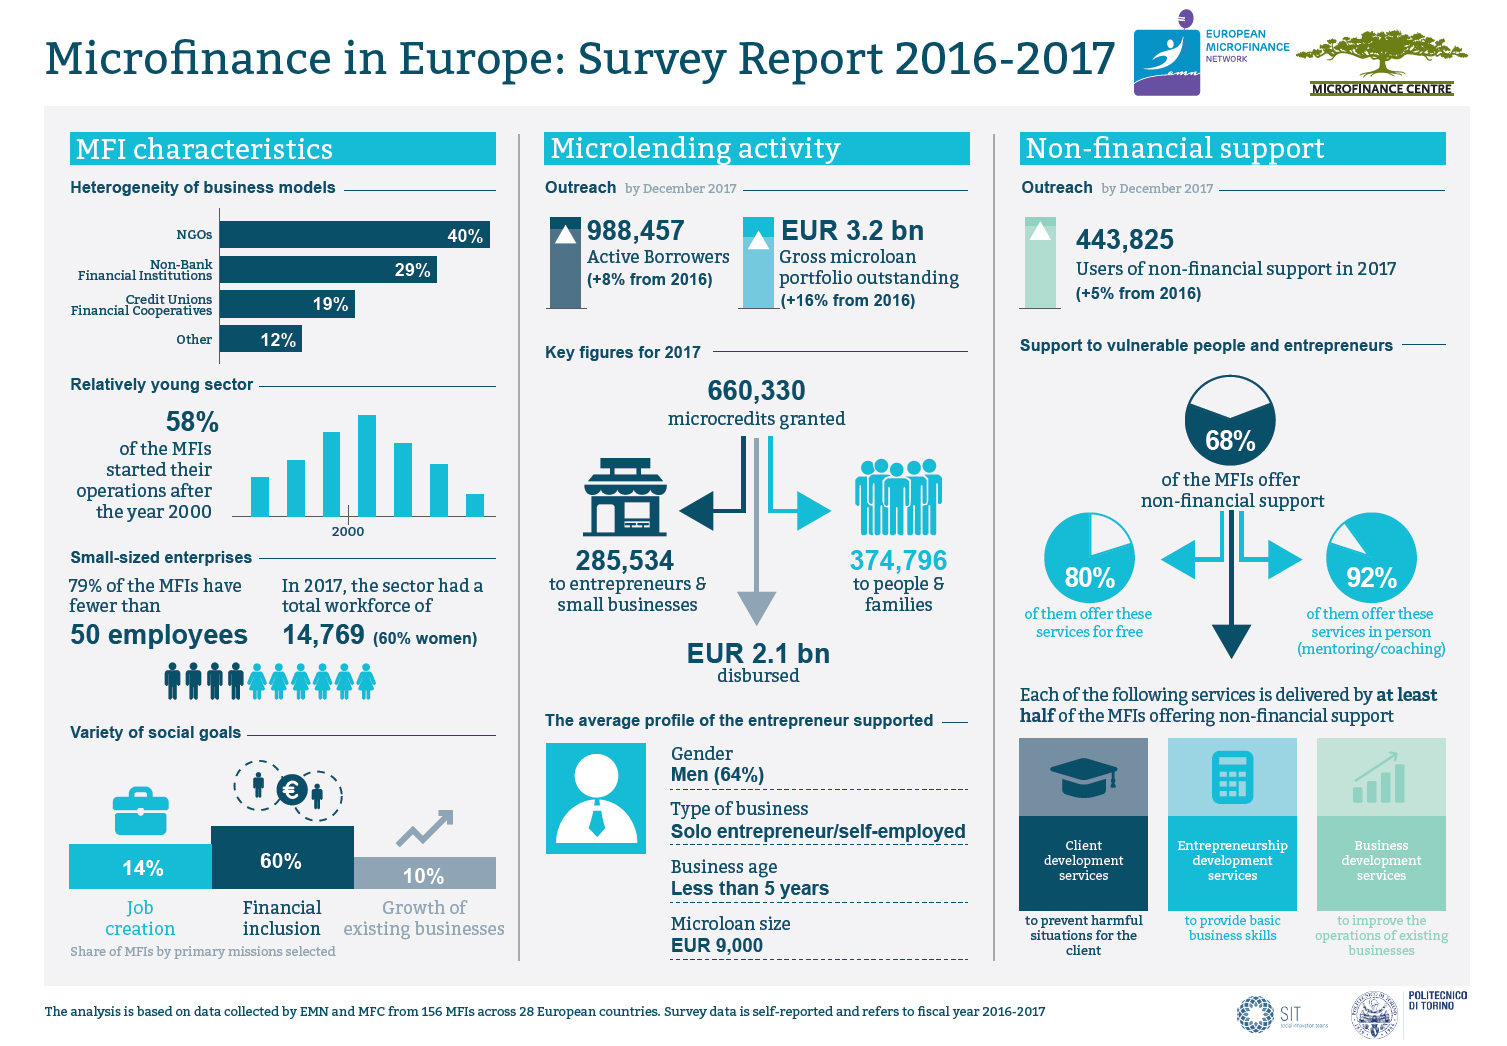 Infographic Microfinance in Europe Survey Report 2016-2017